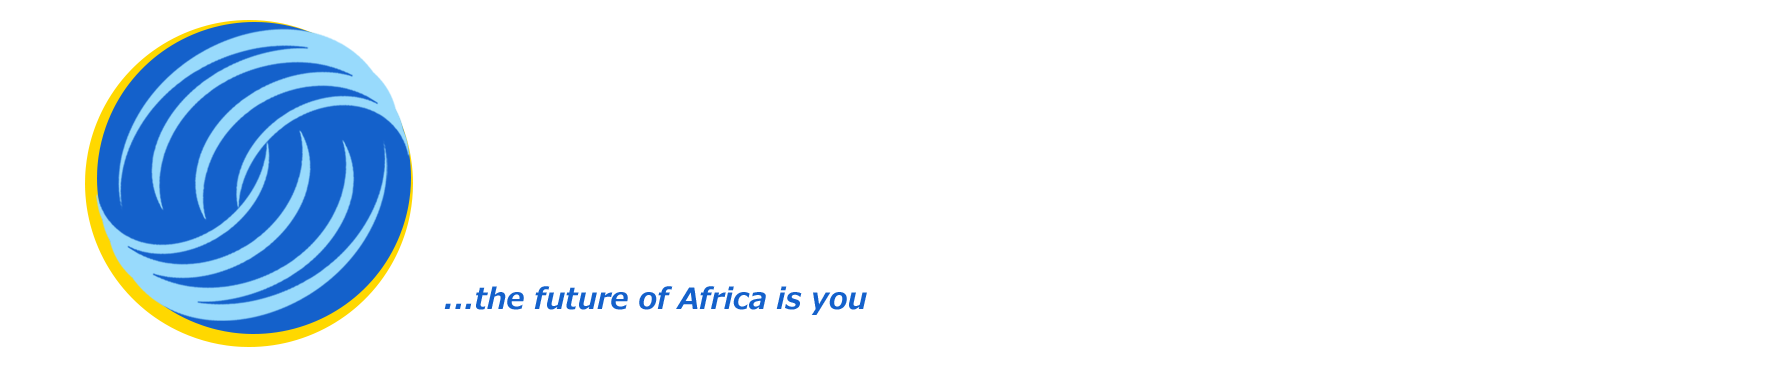 THE PALMS INSTITUTE OF ENTREPRENEURSHIP AND INNOVATION